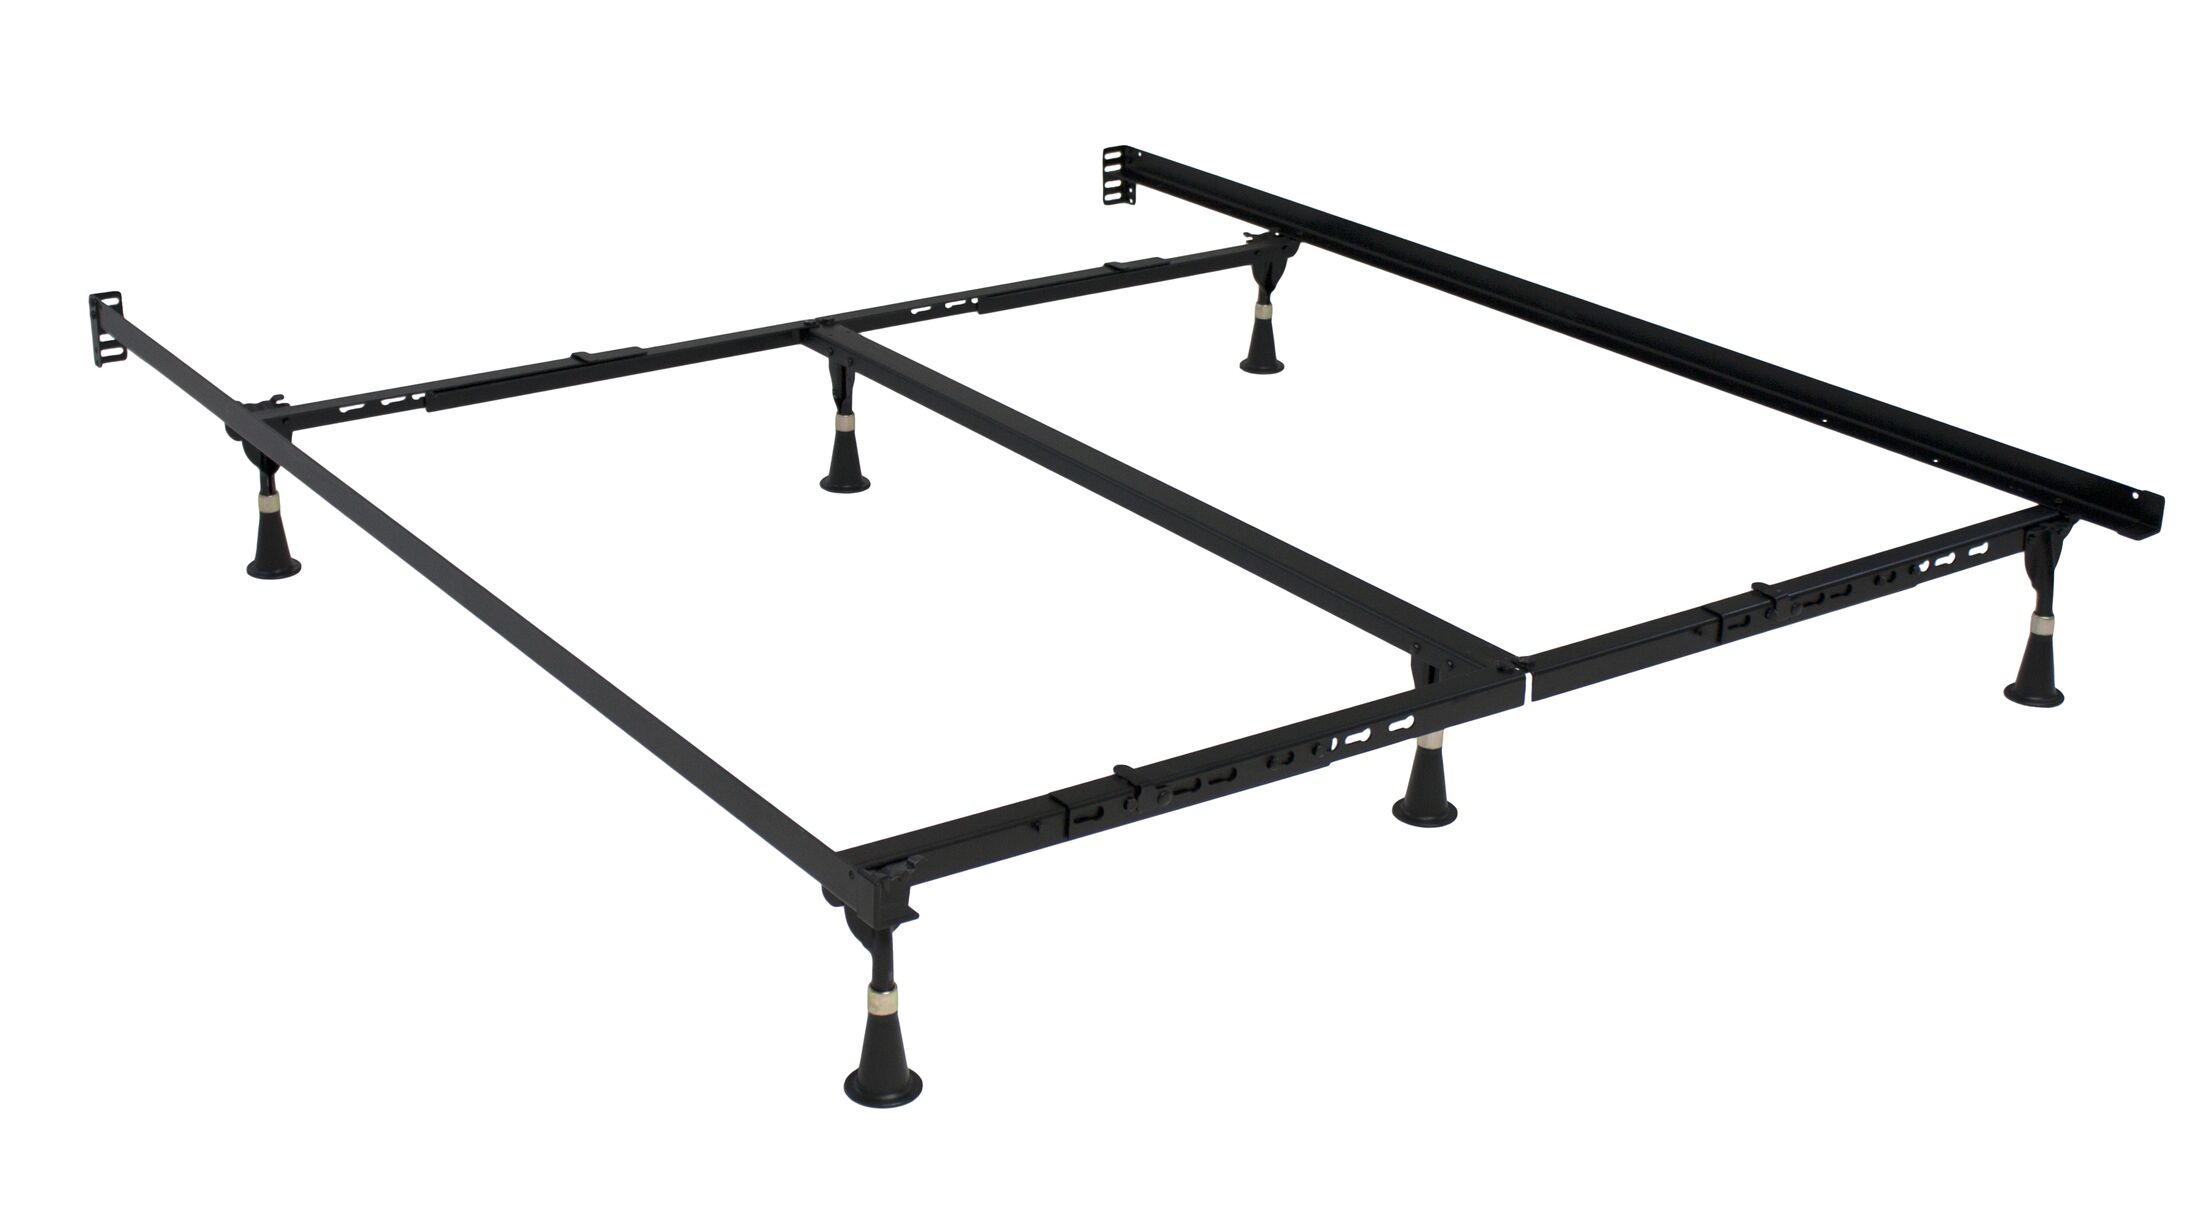 Premium Lev-R-Lock Glides Bed Frame Size: Twin/Full/Queen/King/California King